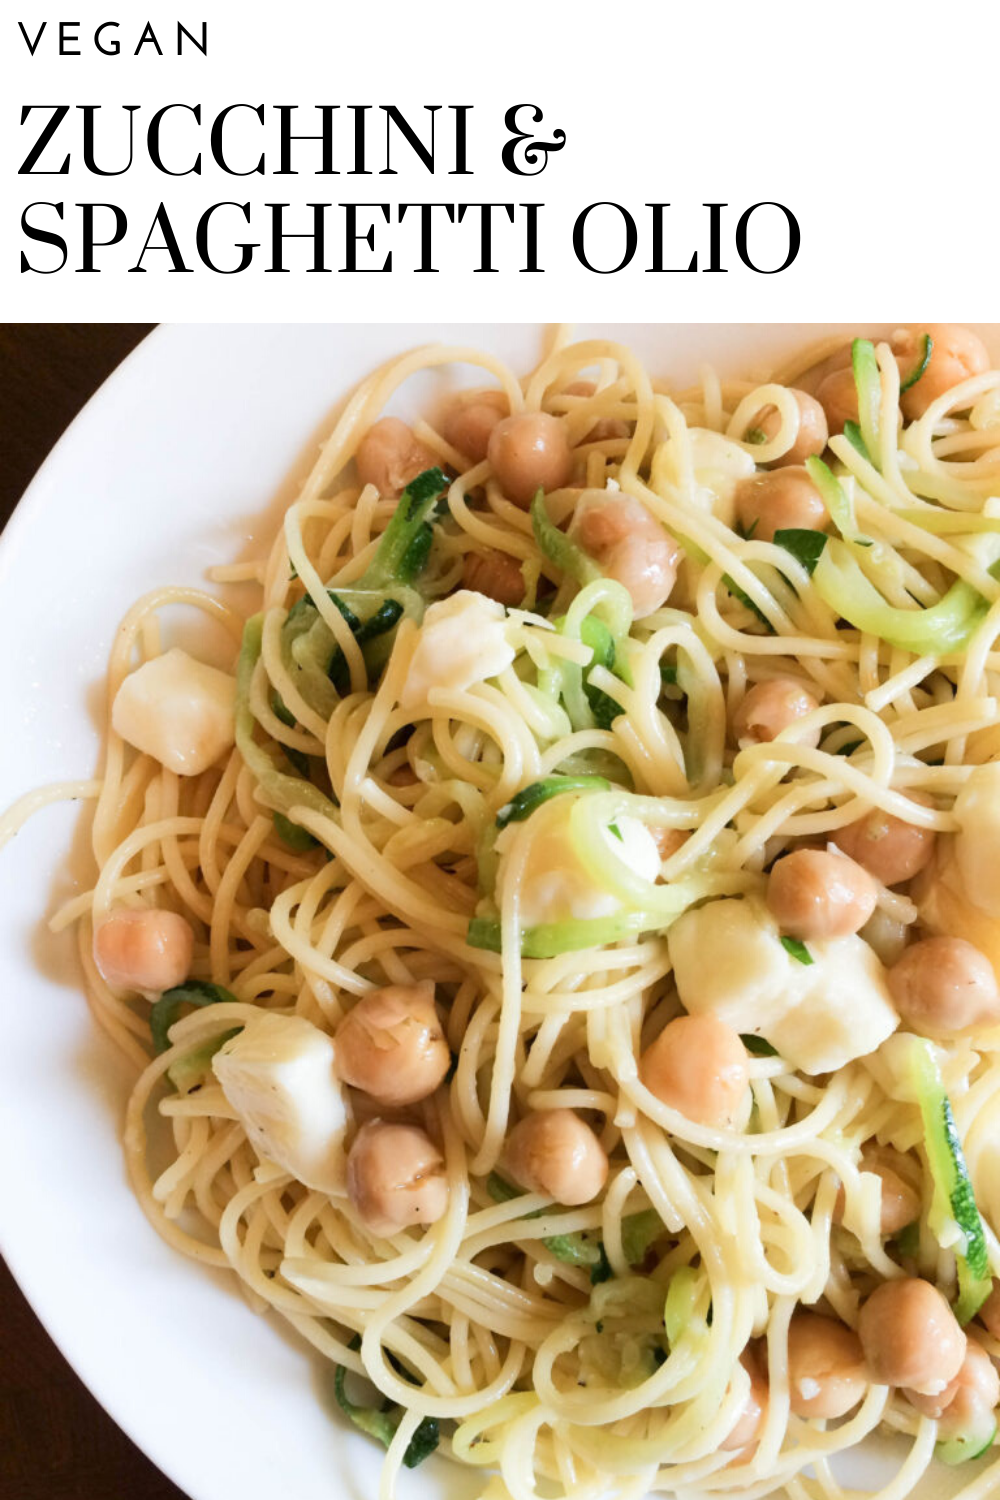 Zucchini & Spaghetti Olio with Chickpeas and Mozzarella - Half zucchini noodles and half spaghetti noodles make for a satisfying and healthy low(er) carb meal! via @thiswifecooks